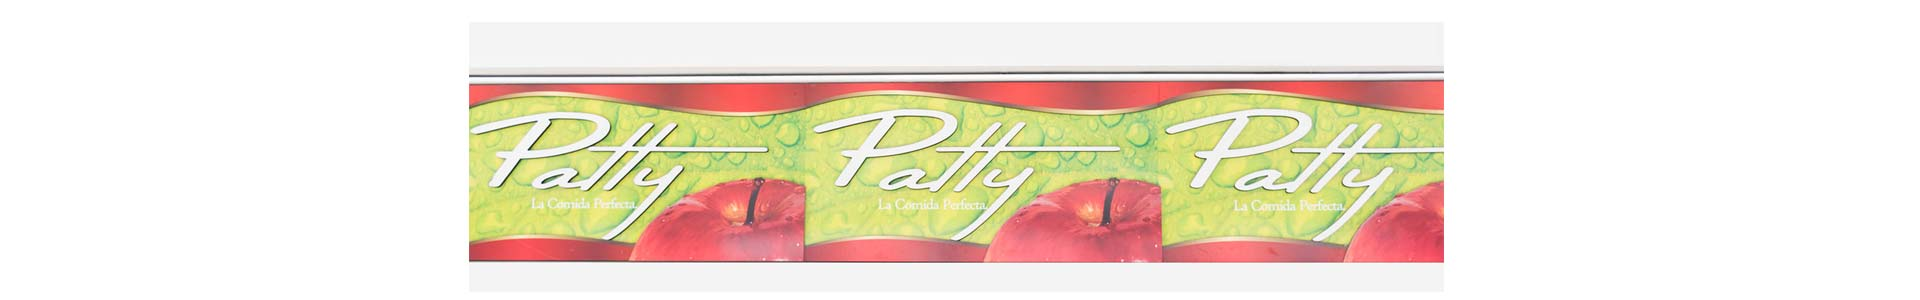 _Formato-header-patty